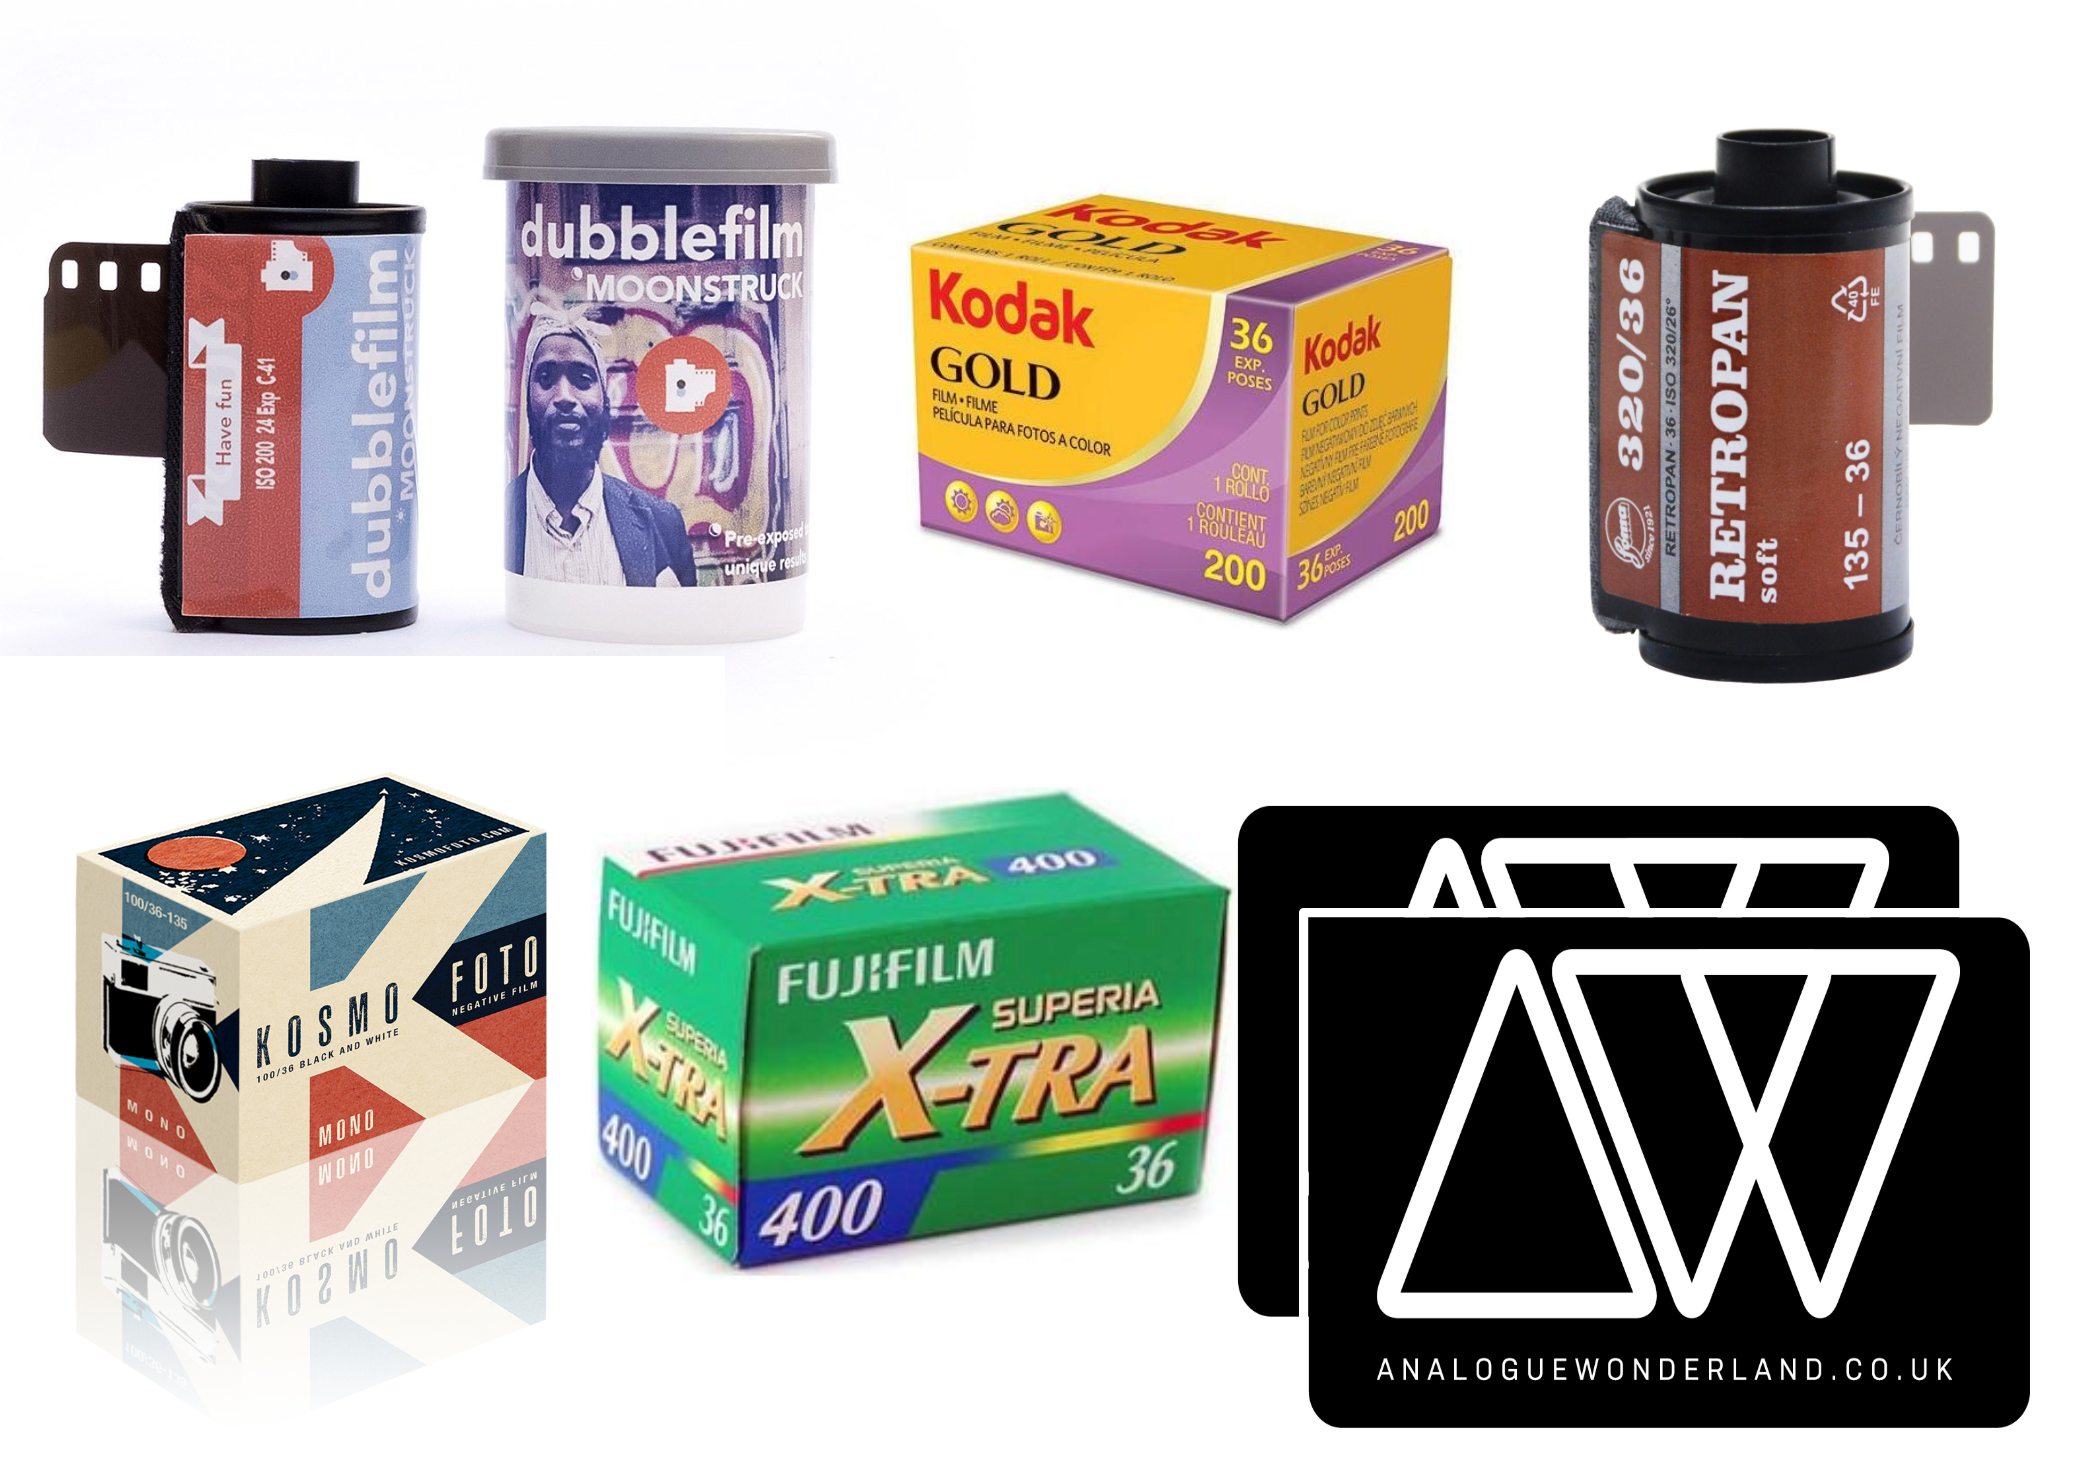 overview of some of the 35mm films available to buy at Analogue Wonderland